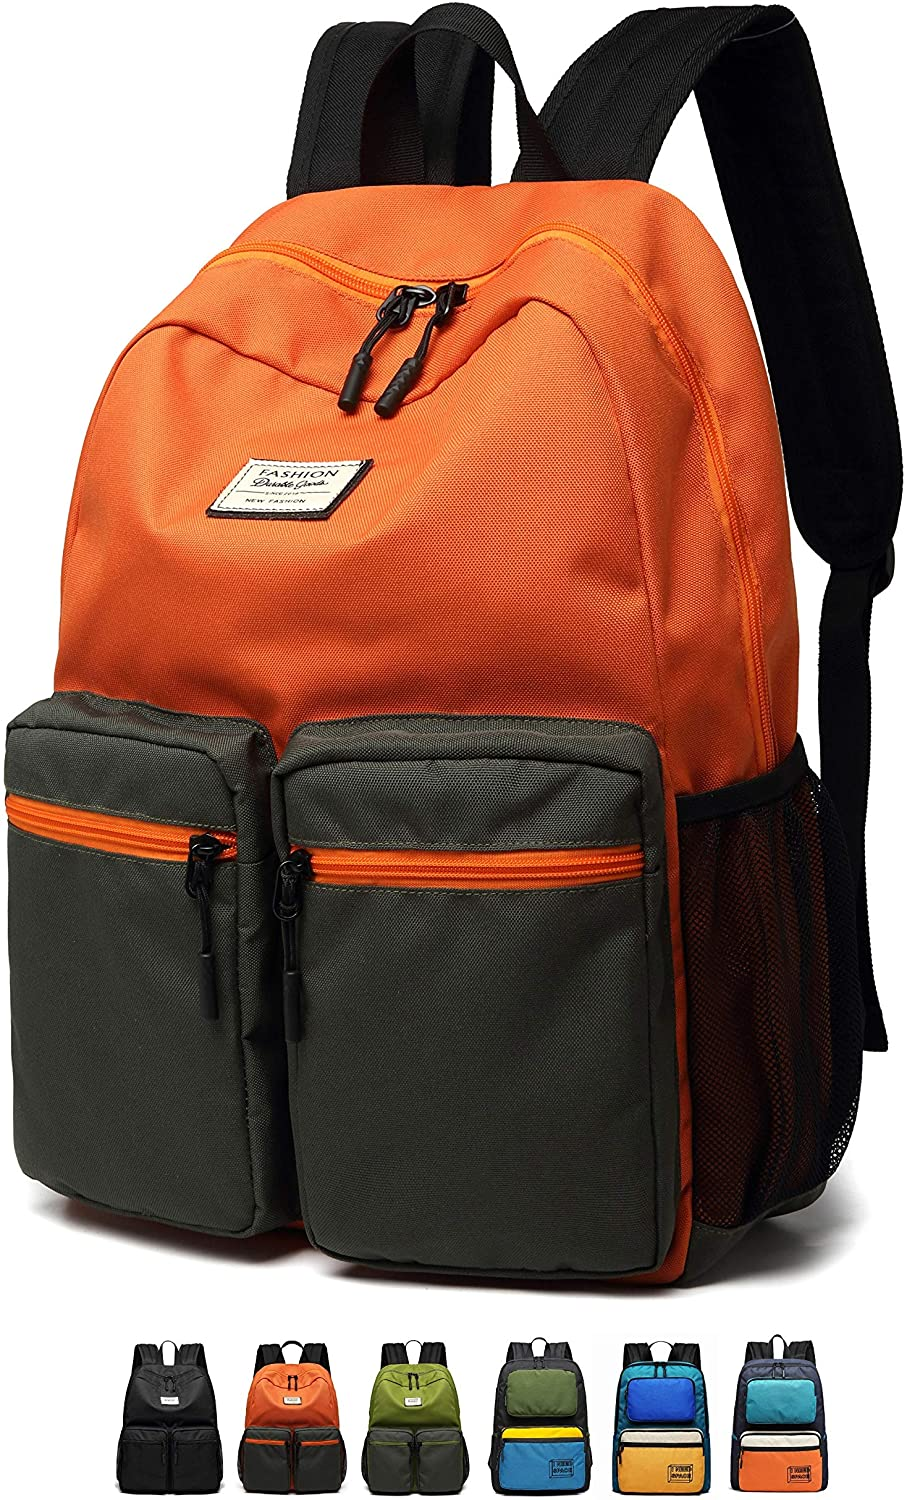 Lightweight Vibrant Backpack for School, Classic Basic Water Resistant Casual Daypack for Travel